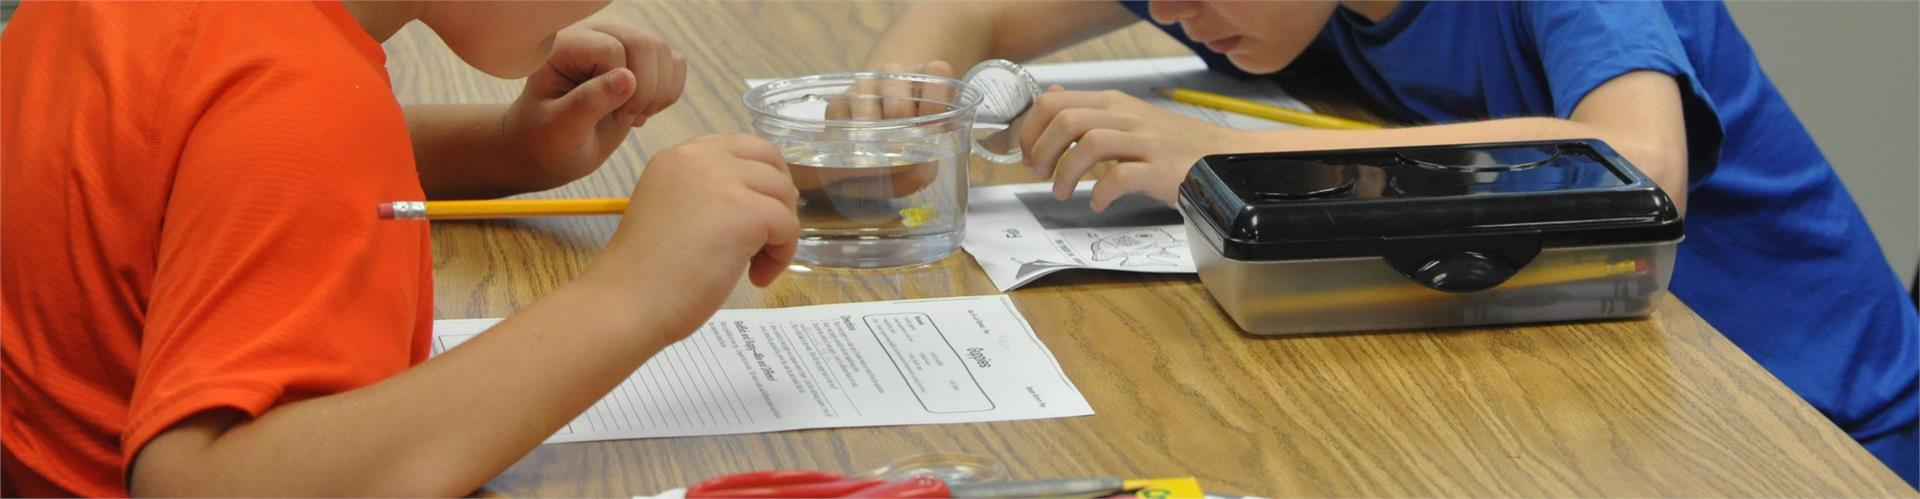 New Palestine Elementary students conducting a science experiment